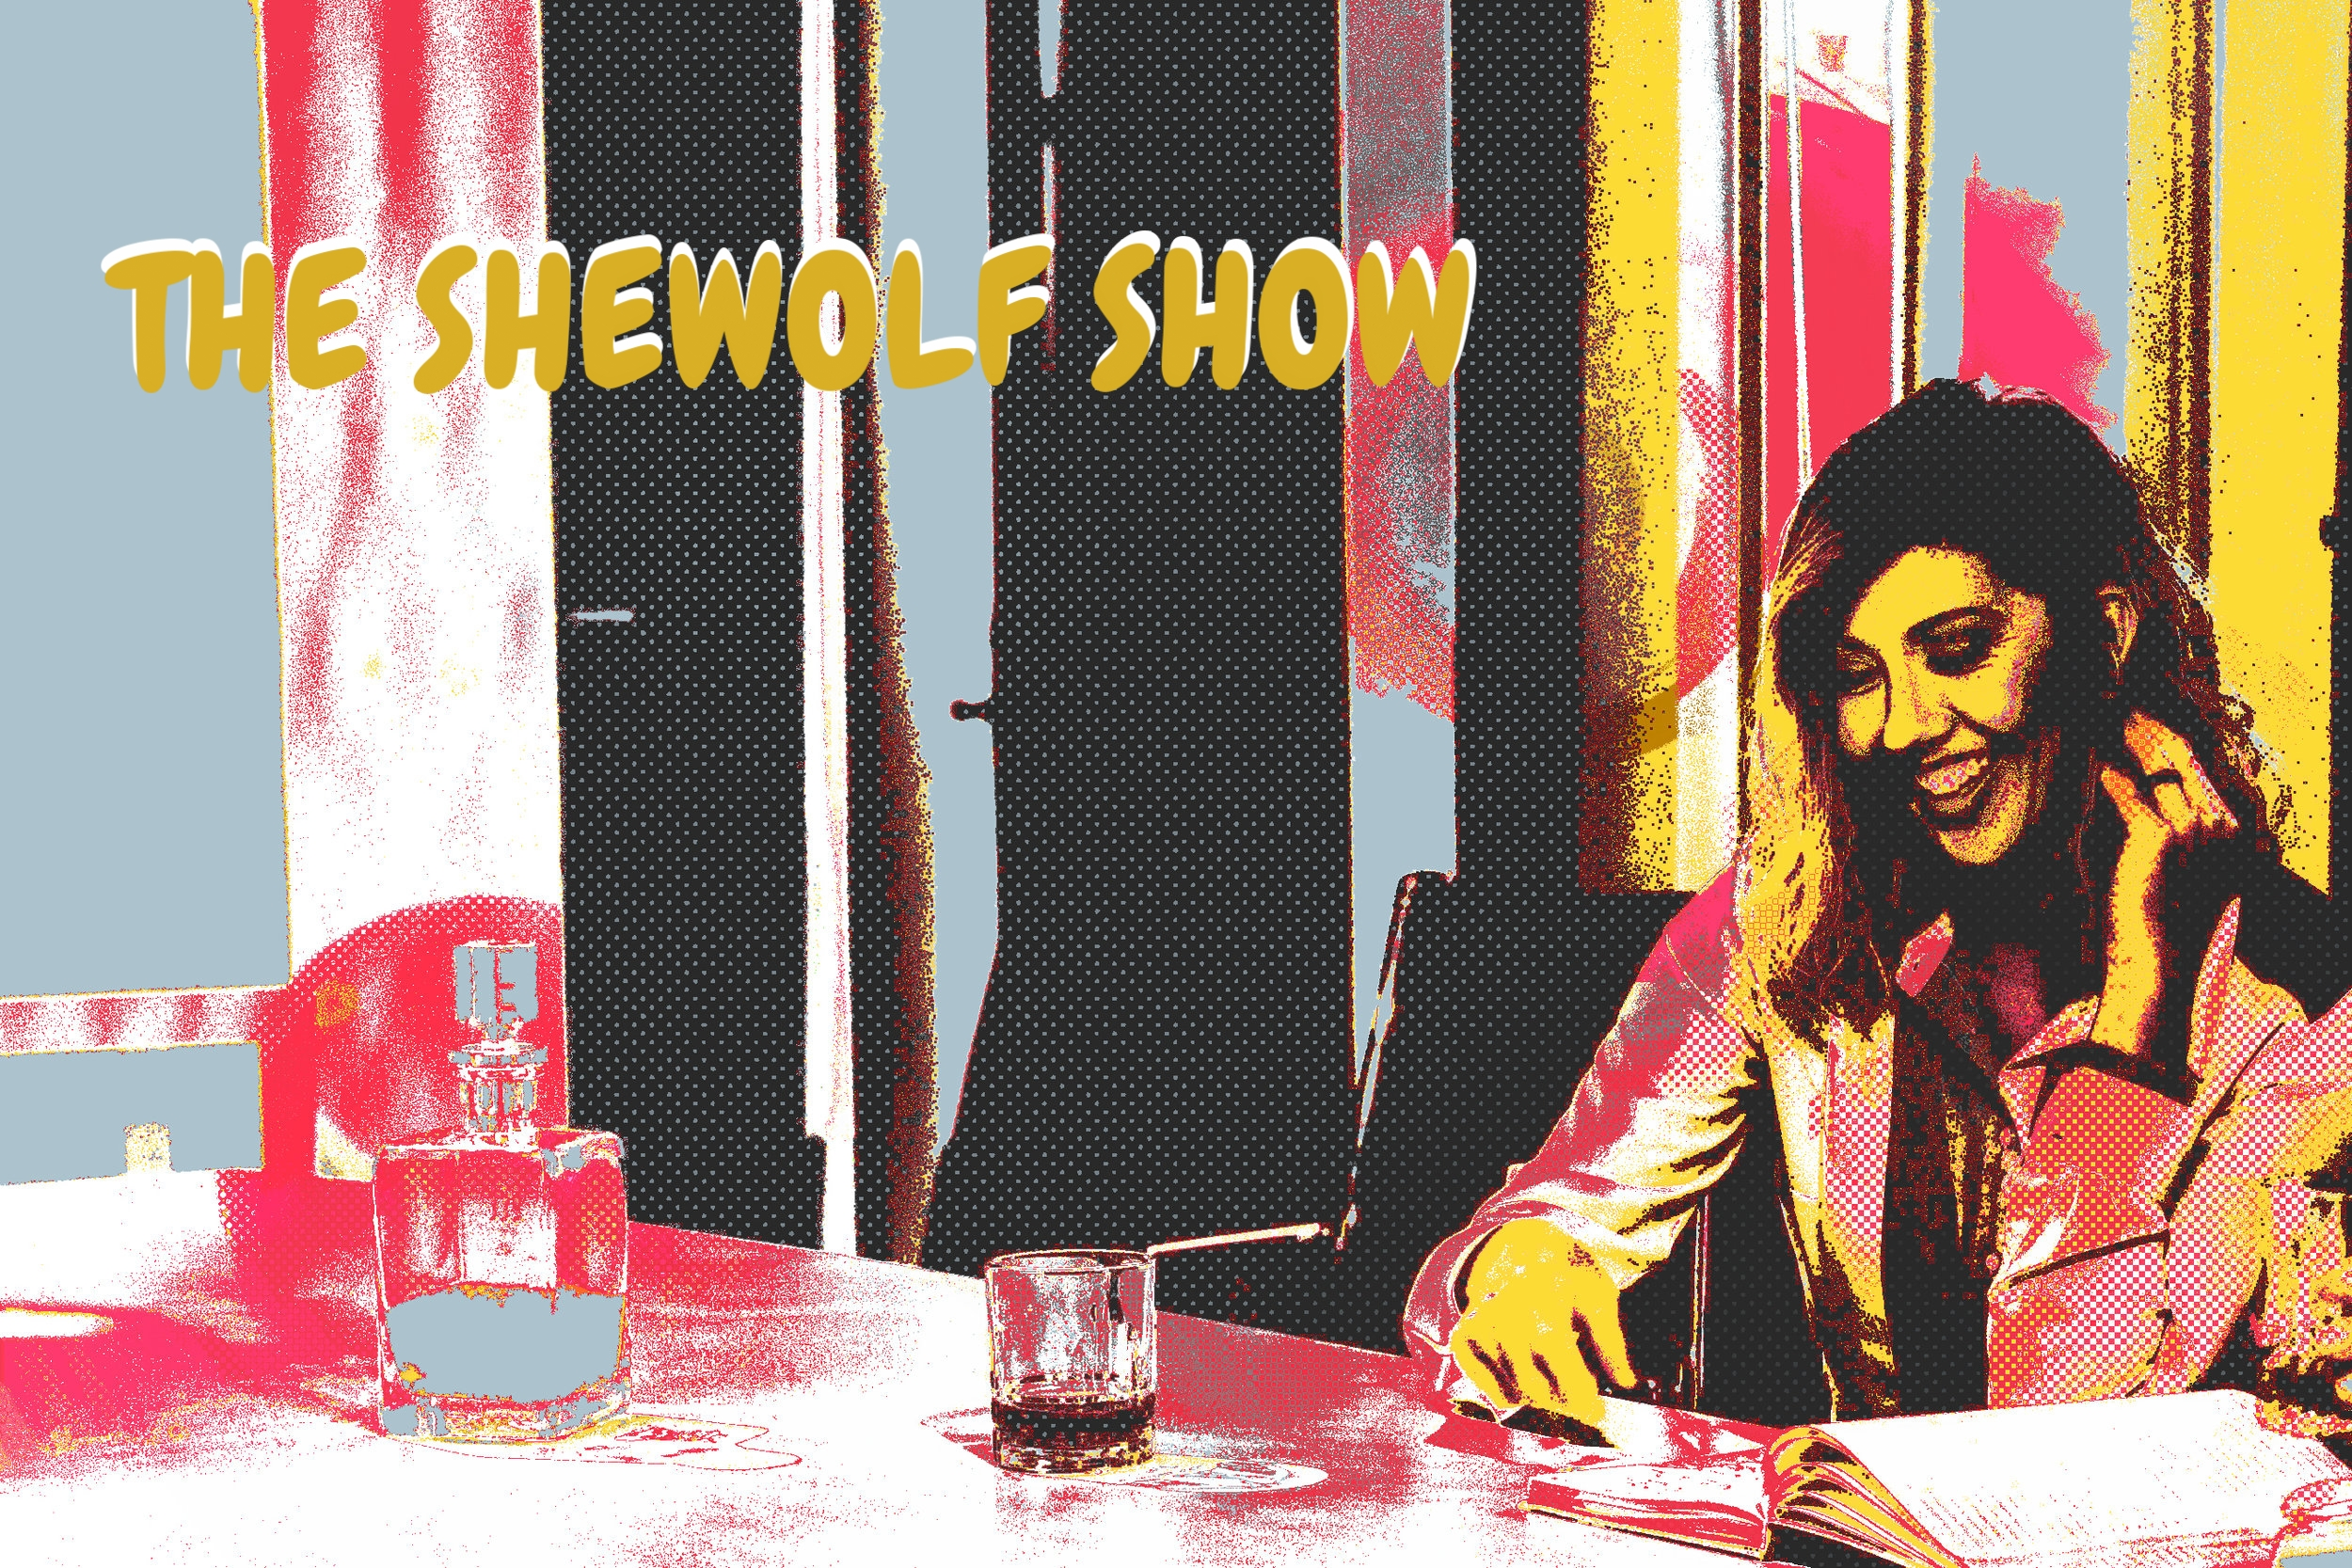 Happy to be part of  The Shewolf Show !!